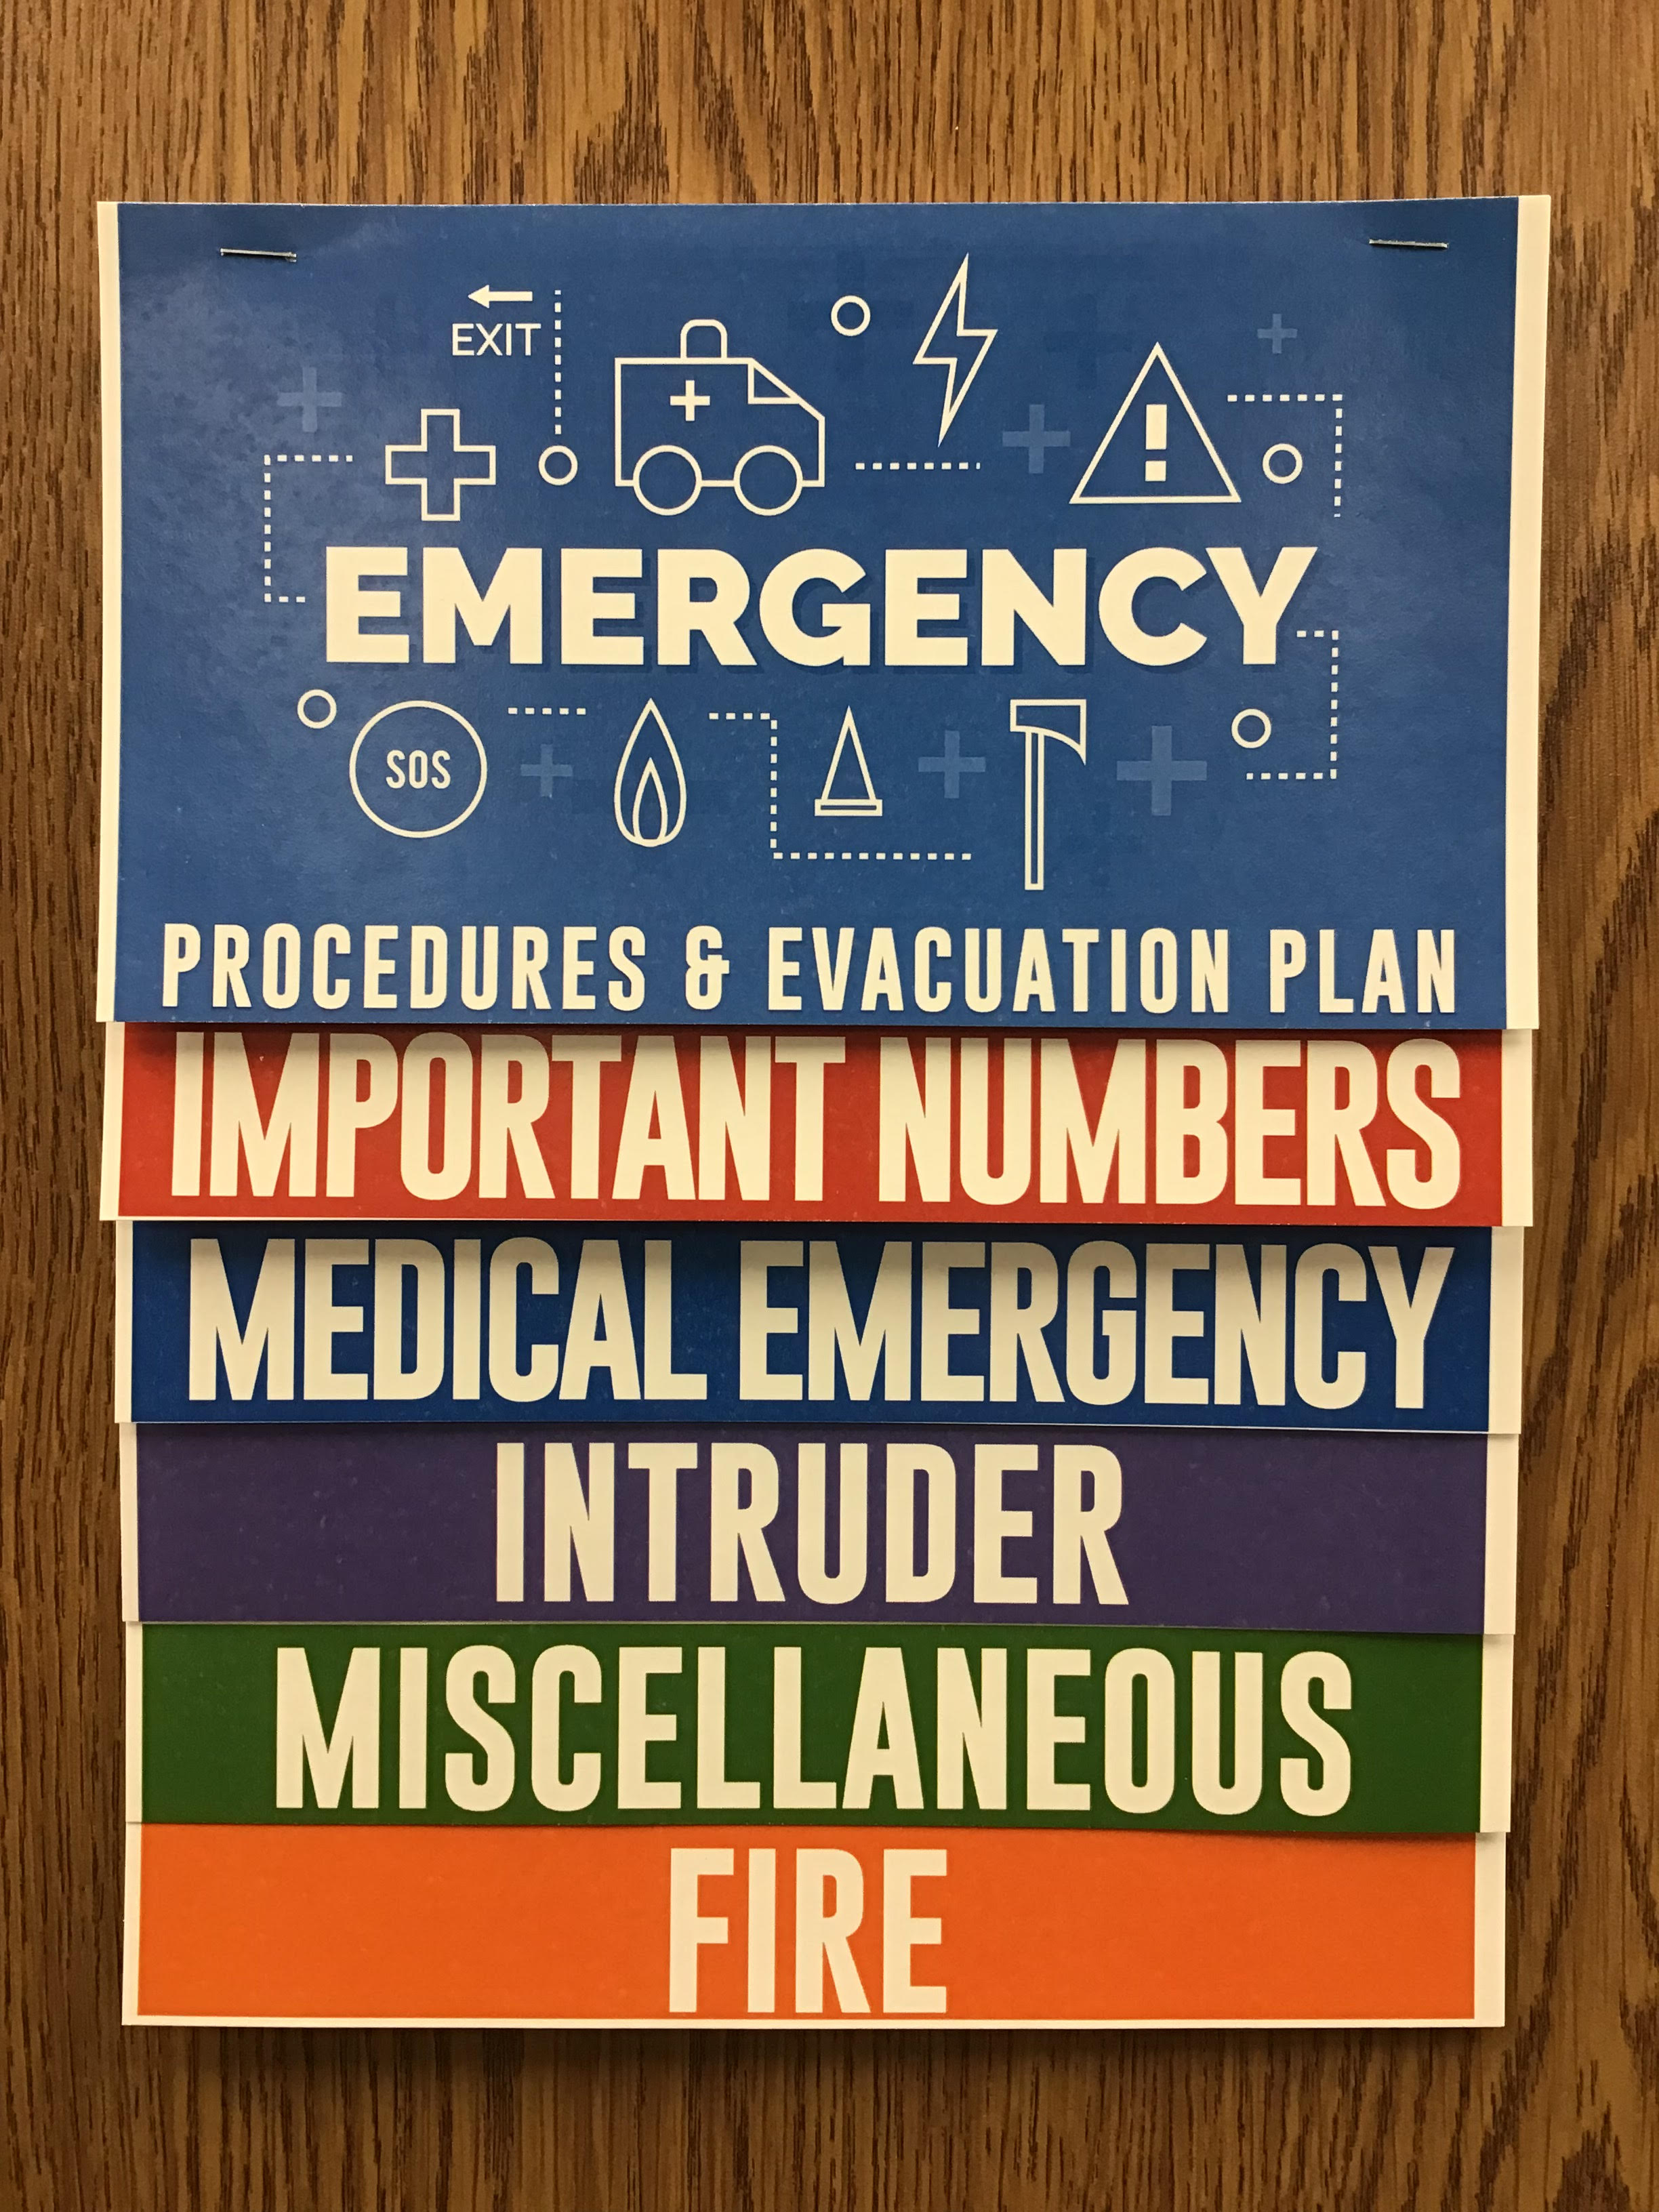 Emergency Procedures.jpg